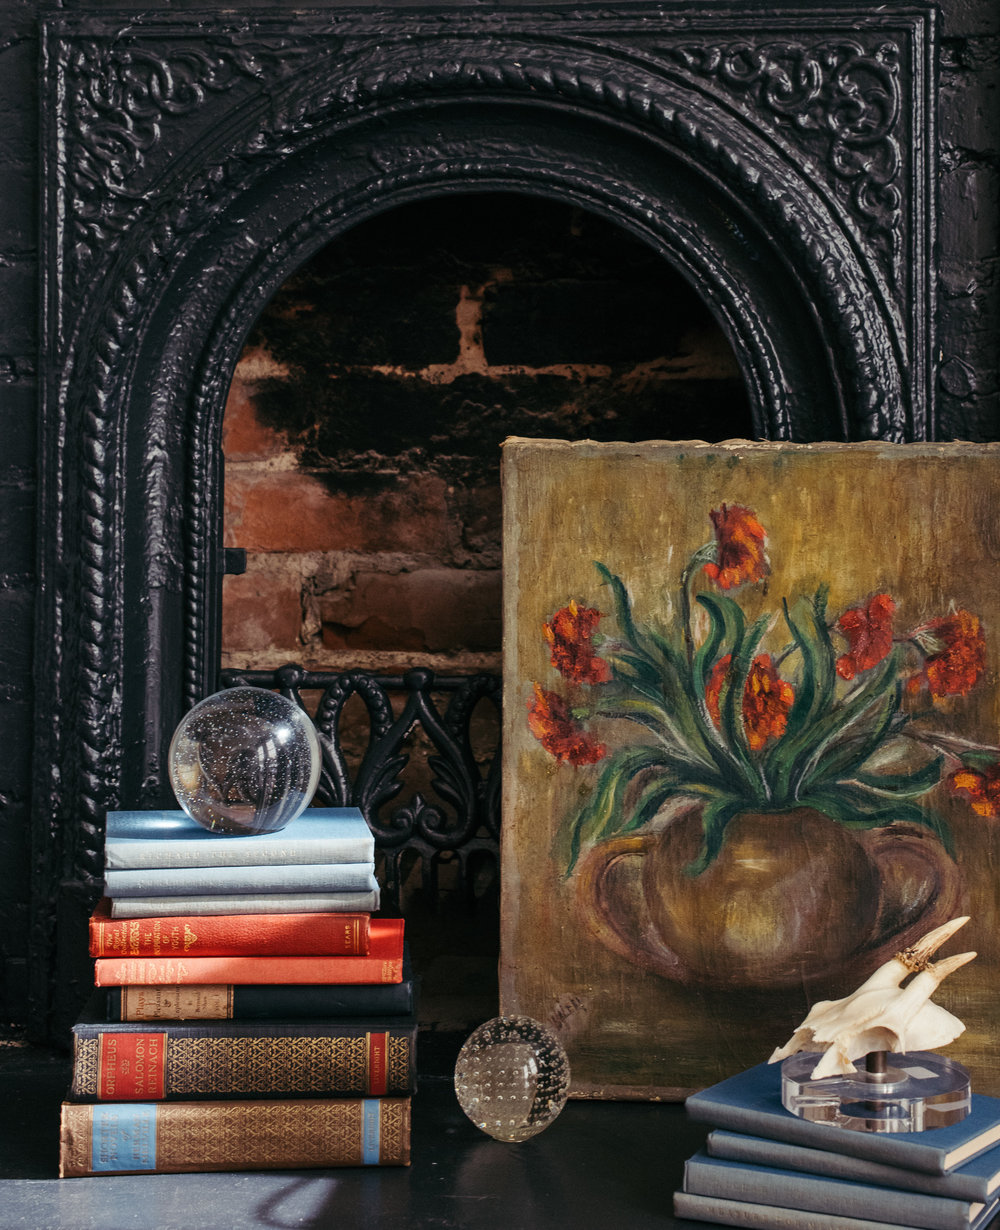 Various Antique Books and French Floral Painting - sourced from Fireside